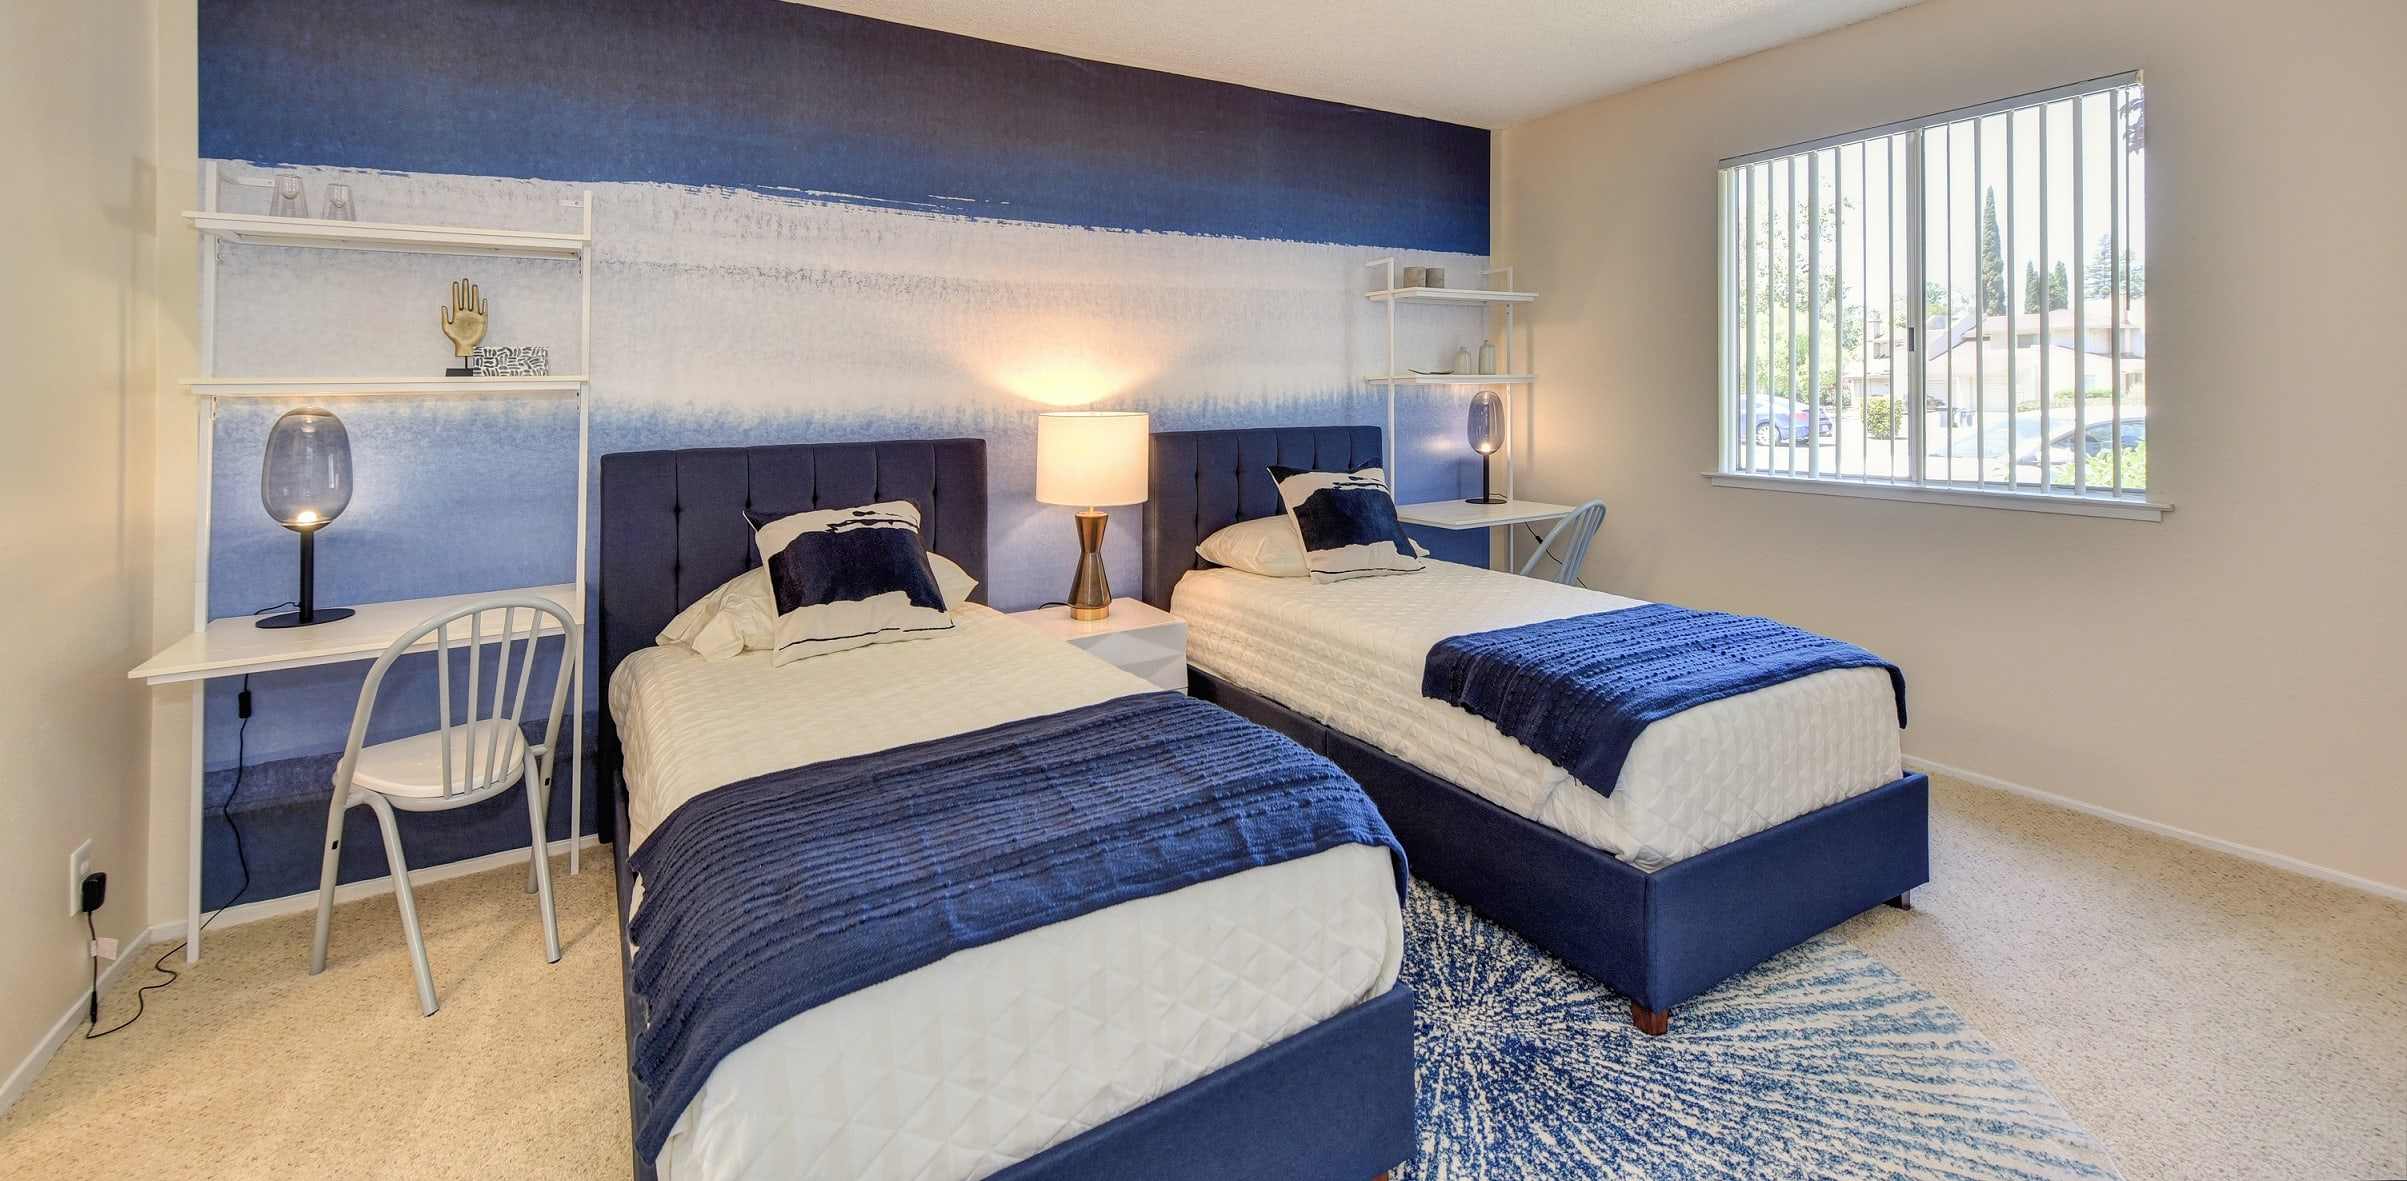 Bedroom with blue and white accent wall and matching bedding.  Small desks on the sides of each of the two beds.